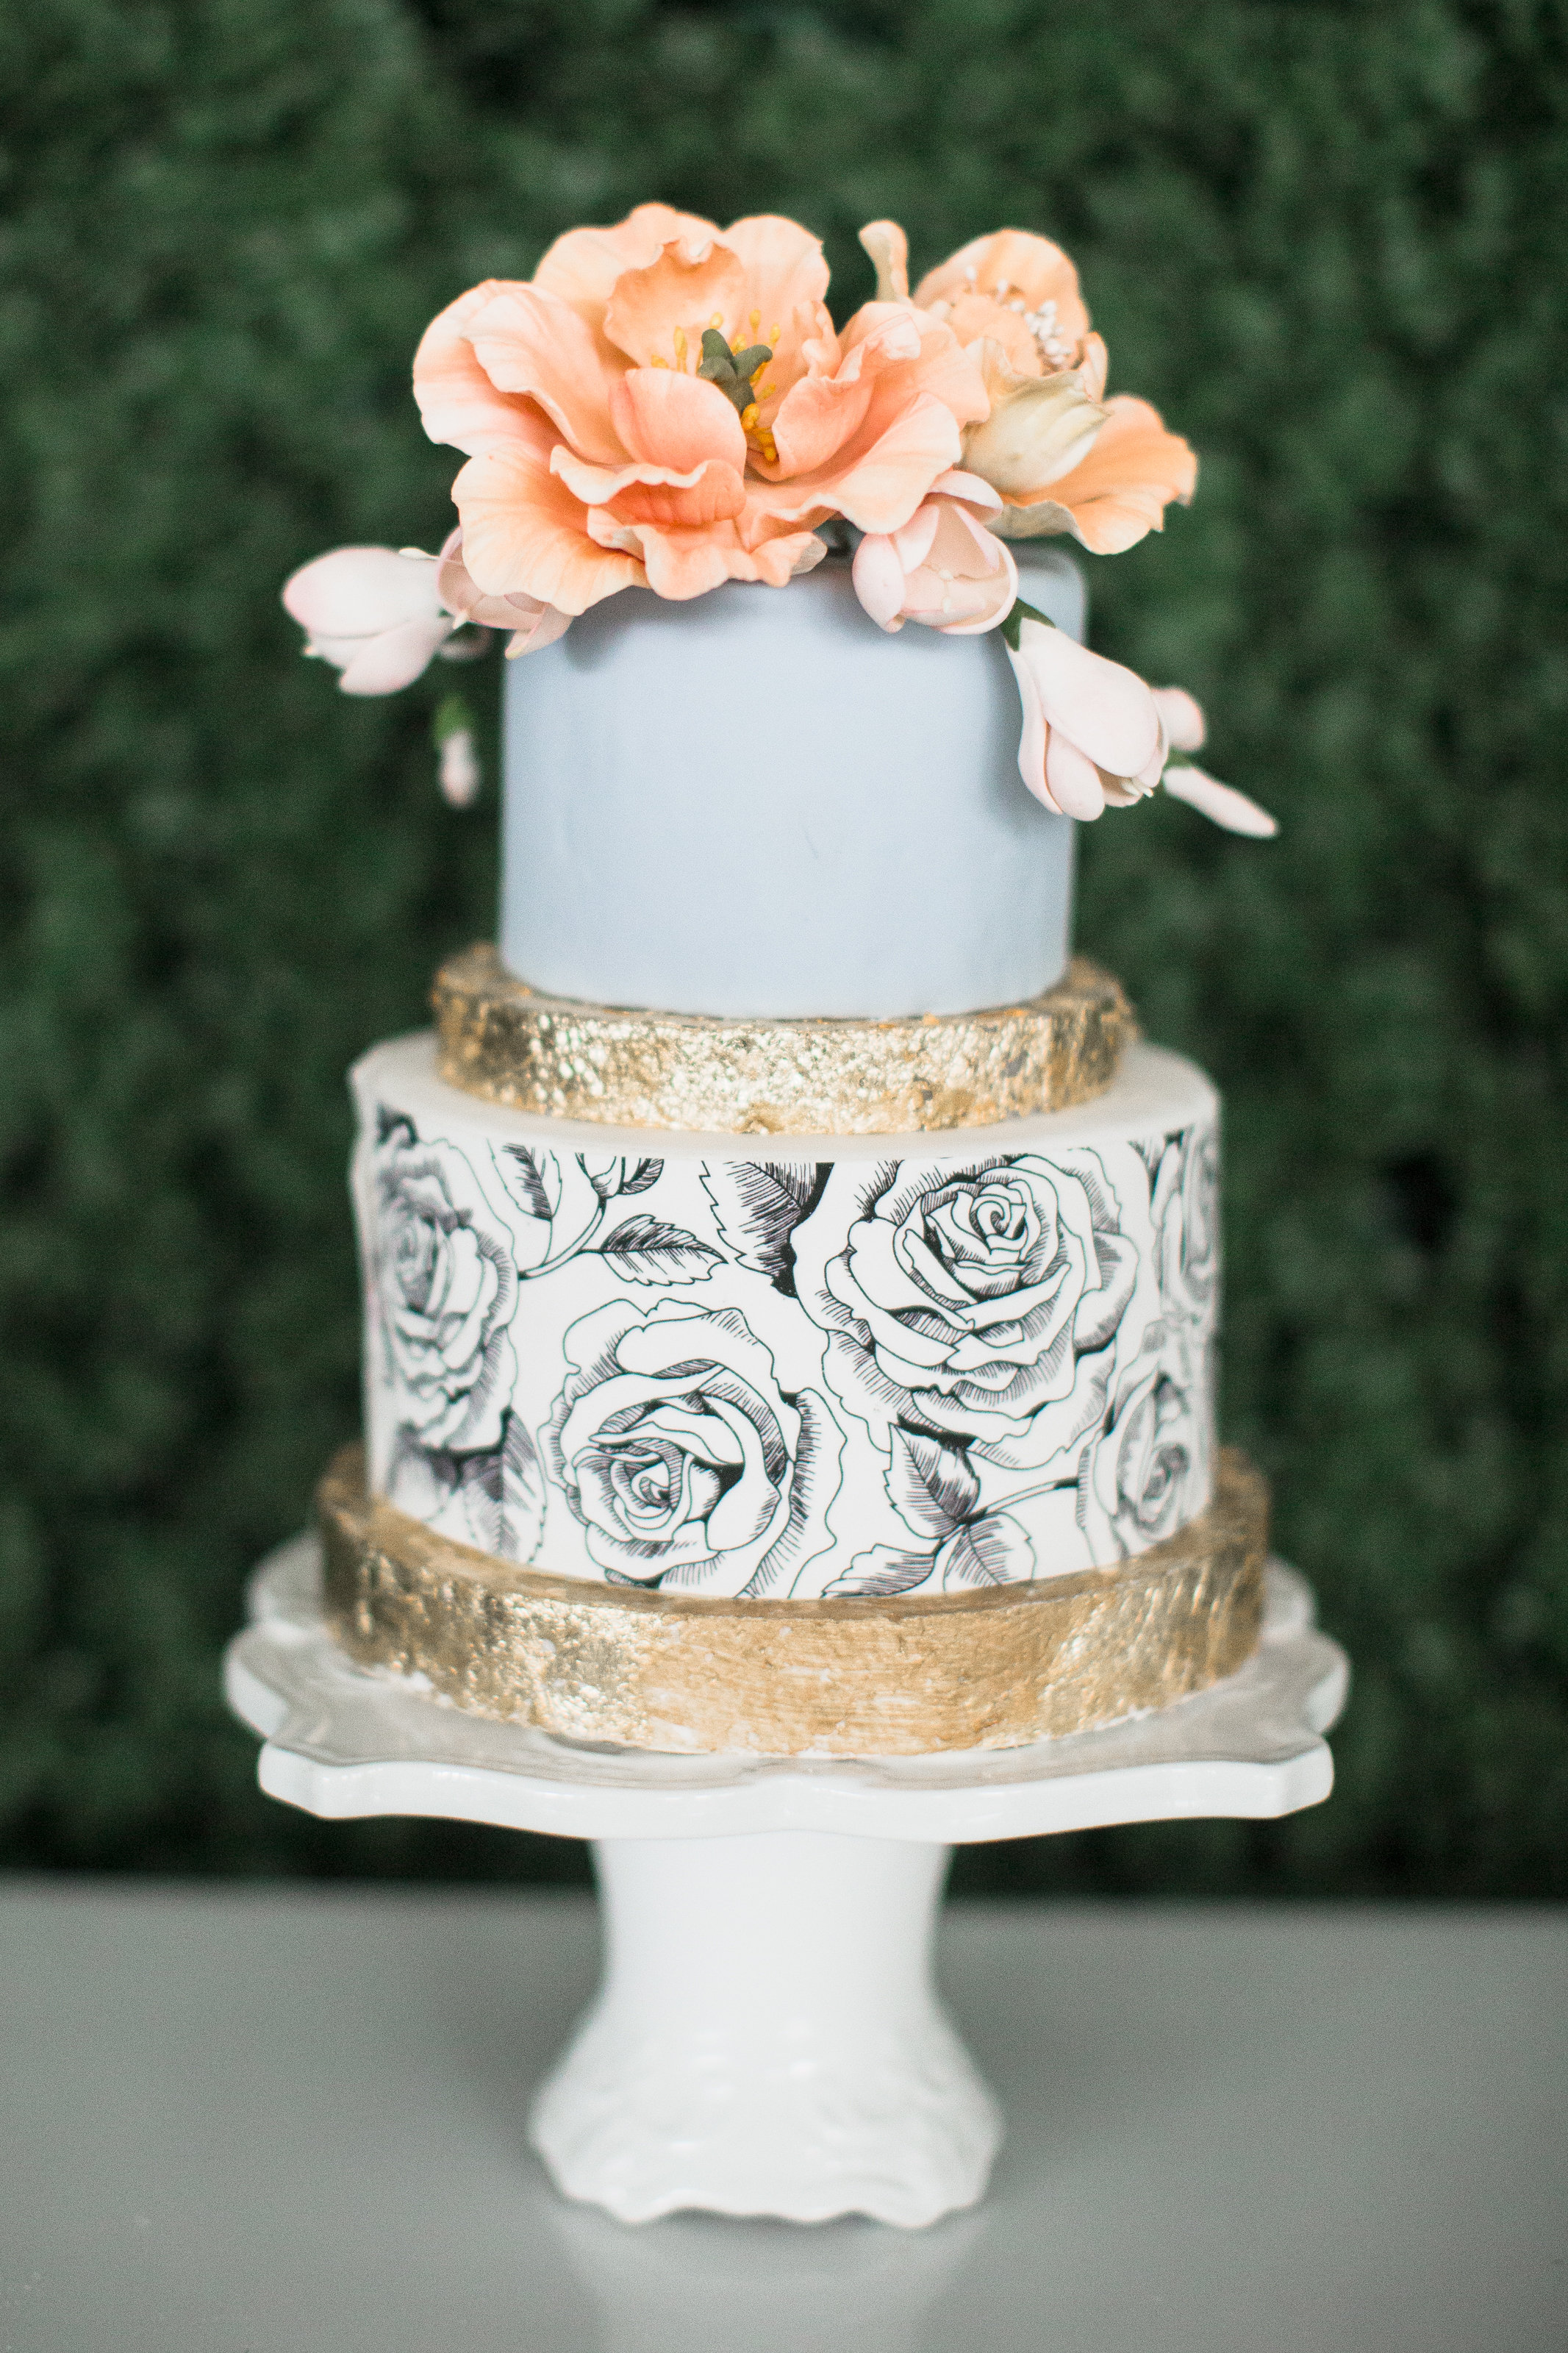 Light blue wedding cake with hand painted black roses and gold accents